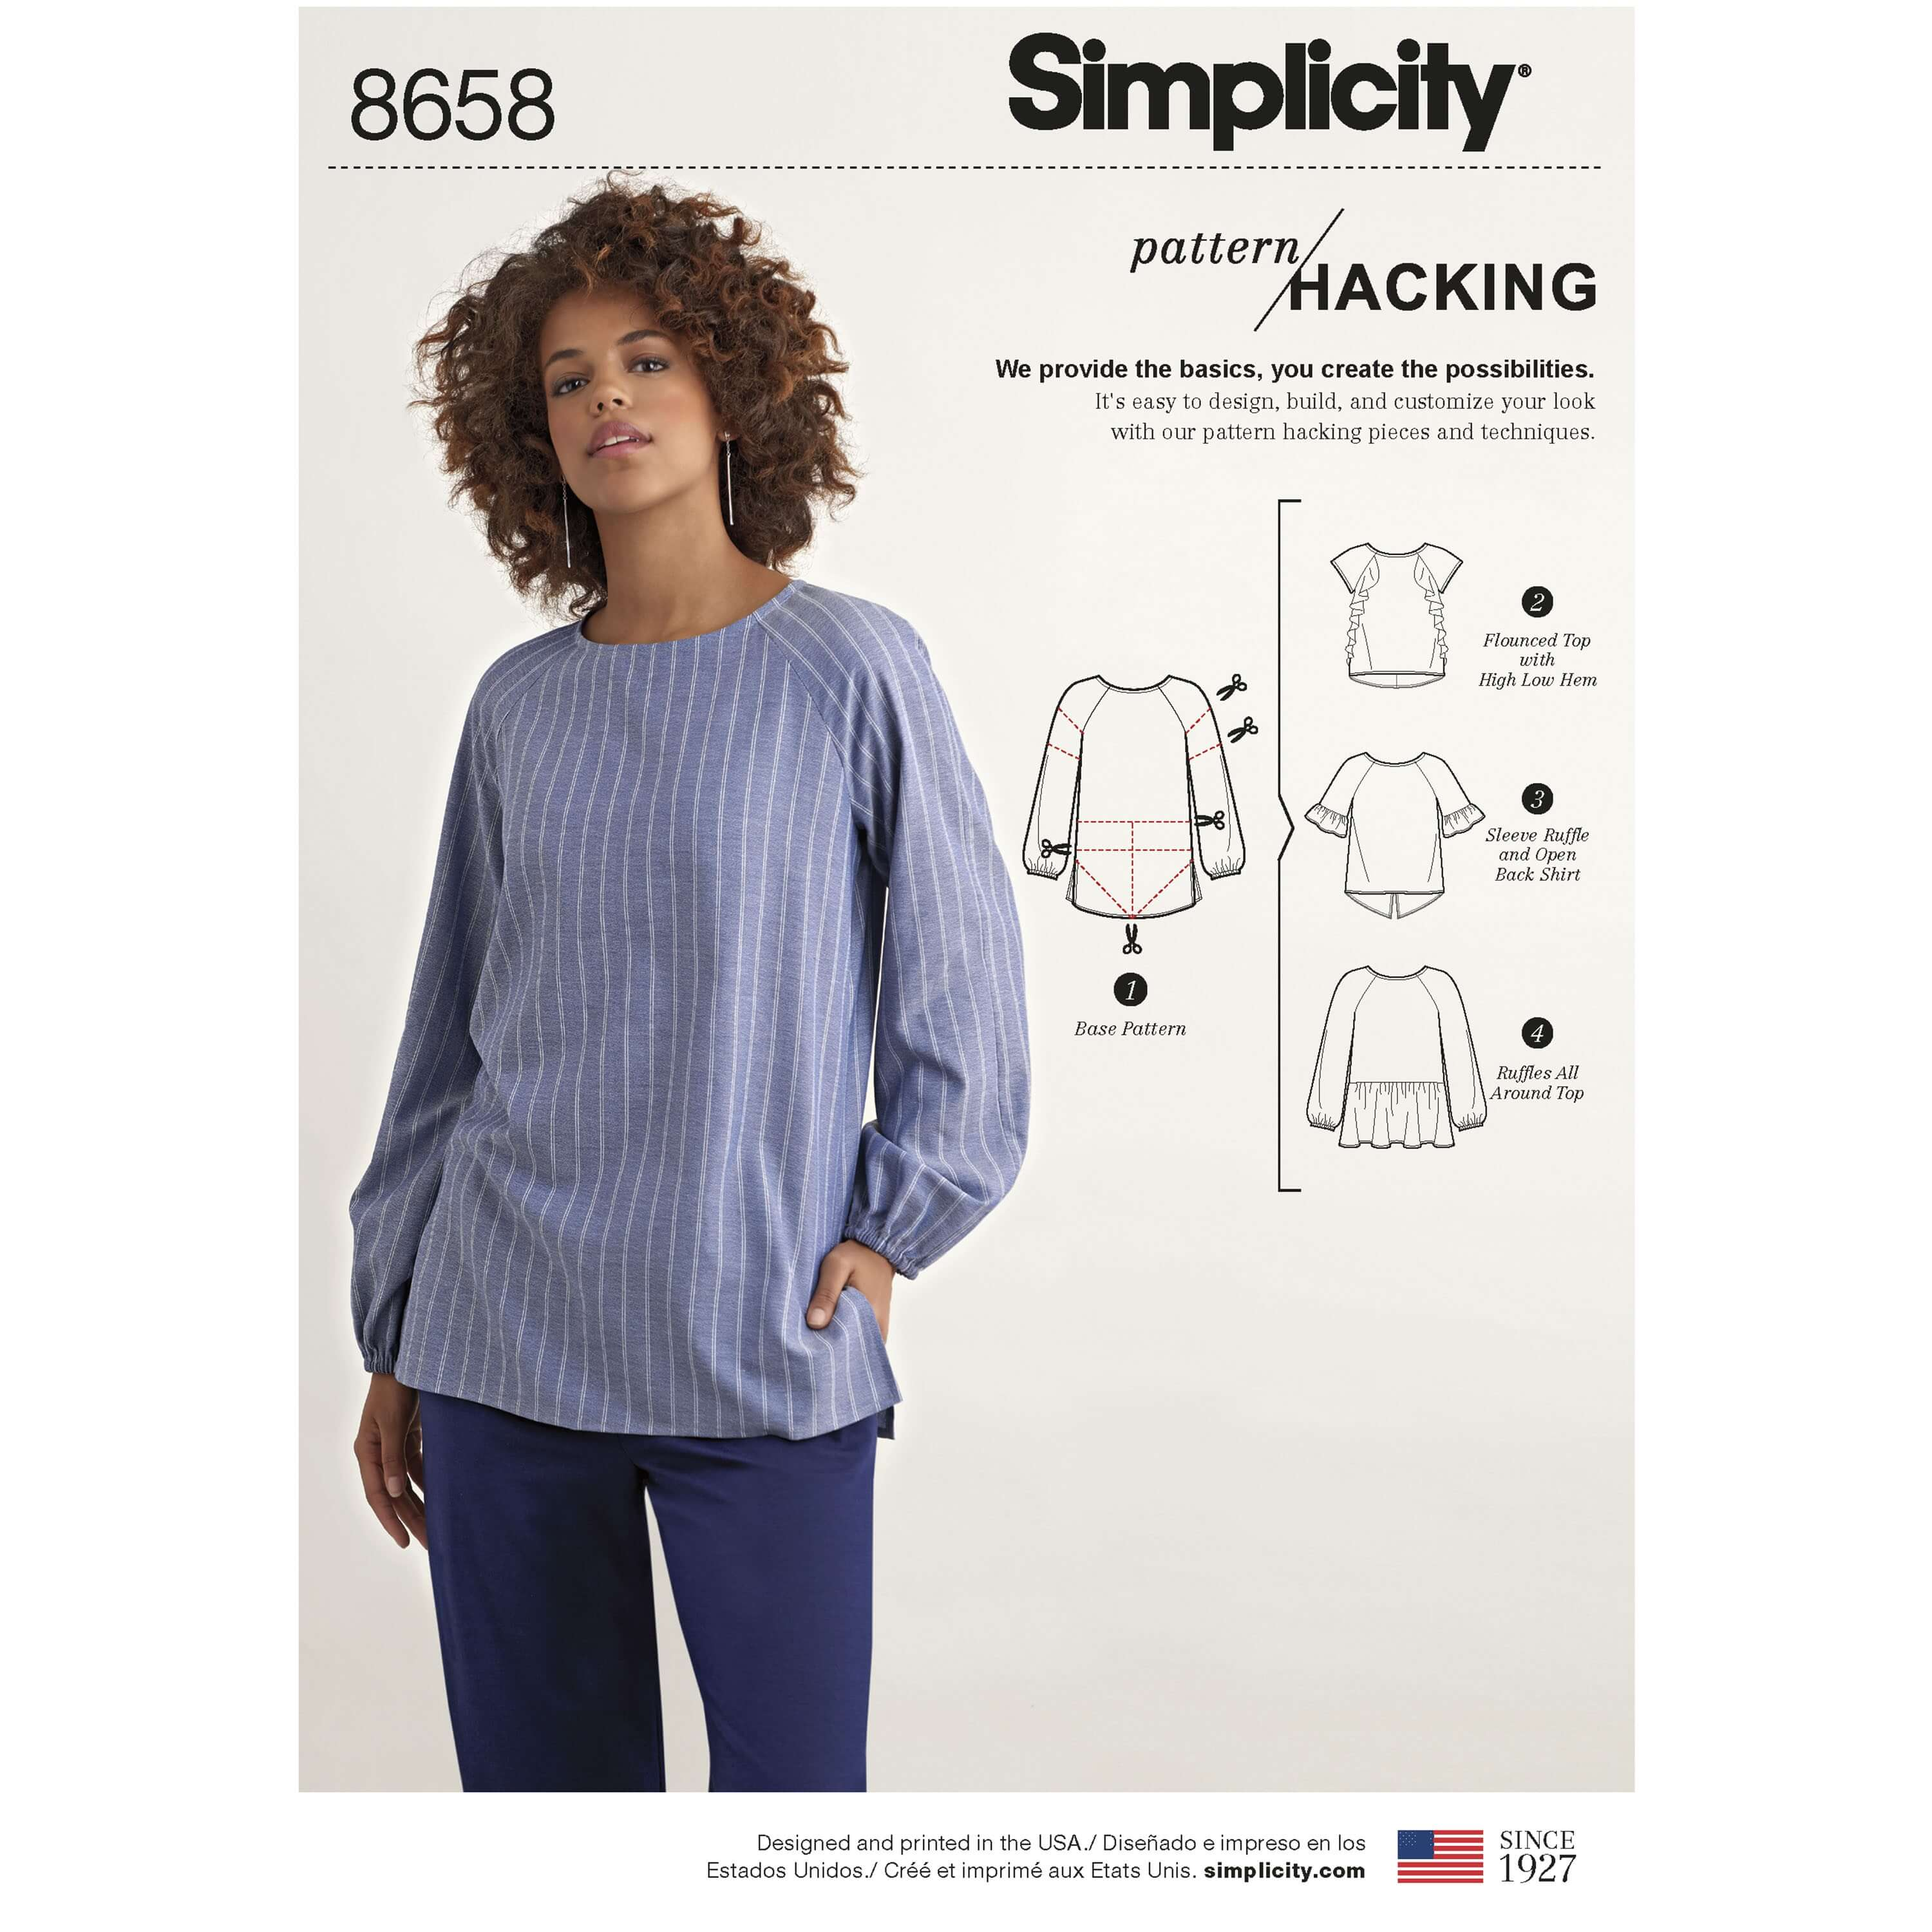 Simplicity Sewing Pattern 8658 Women's Top  with Options for Design Hacking